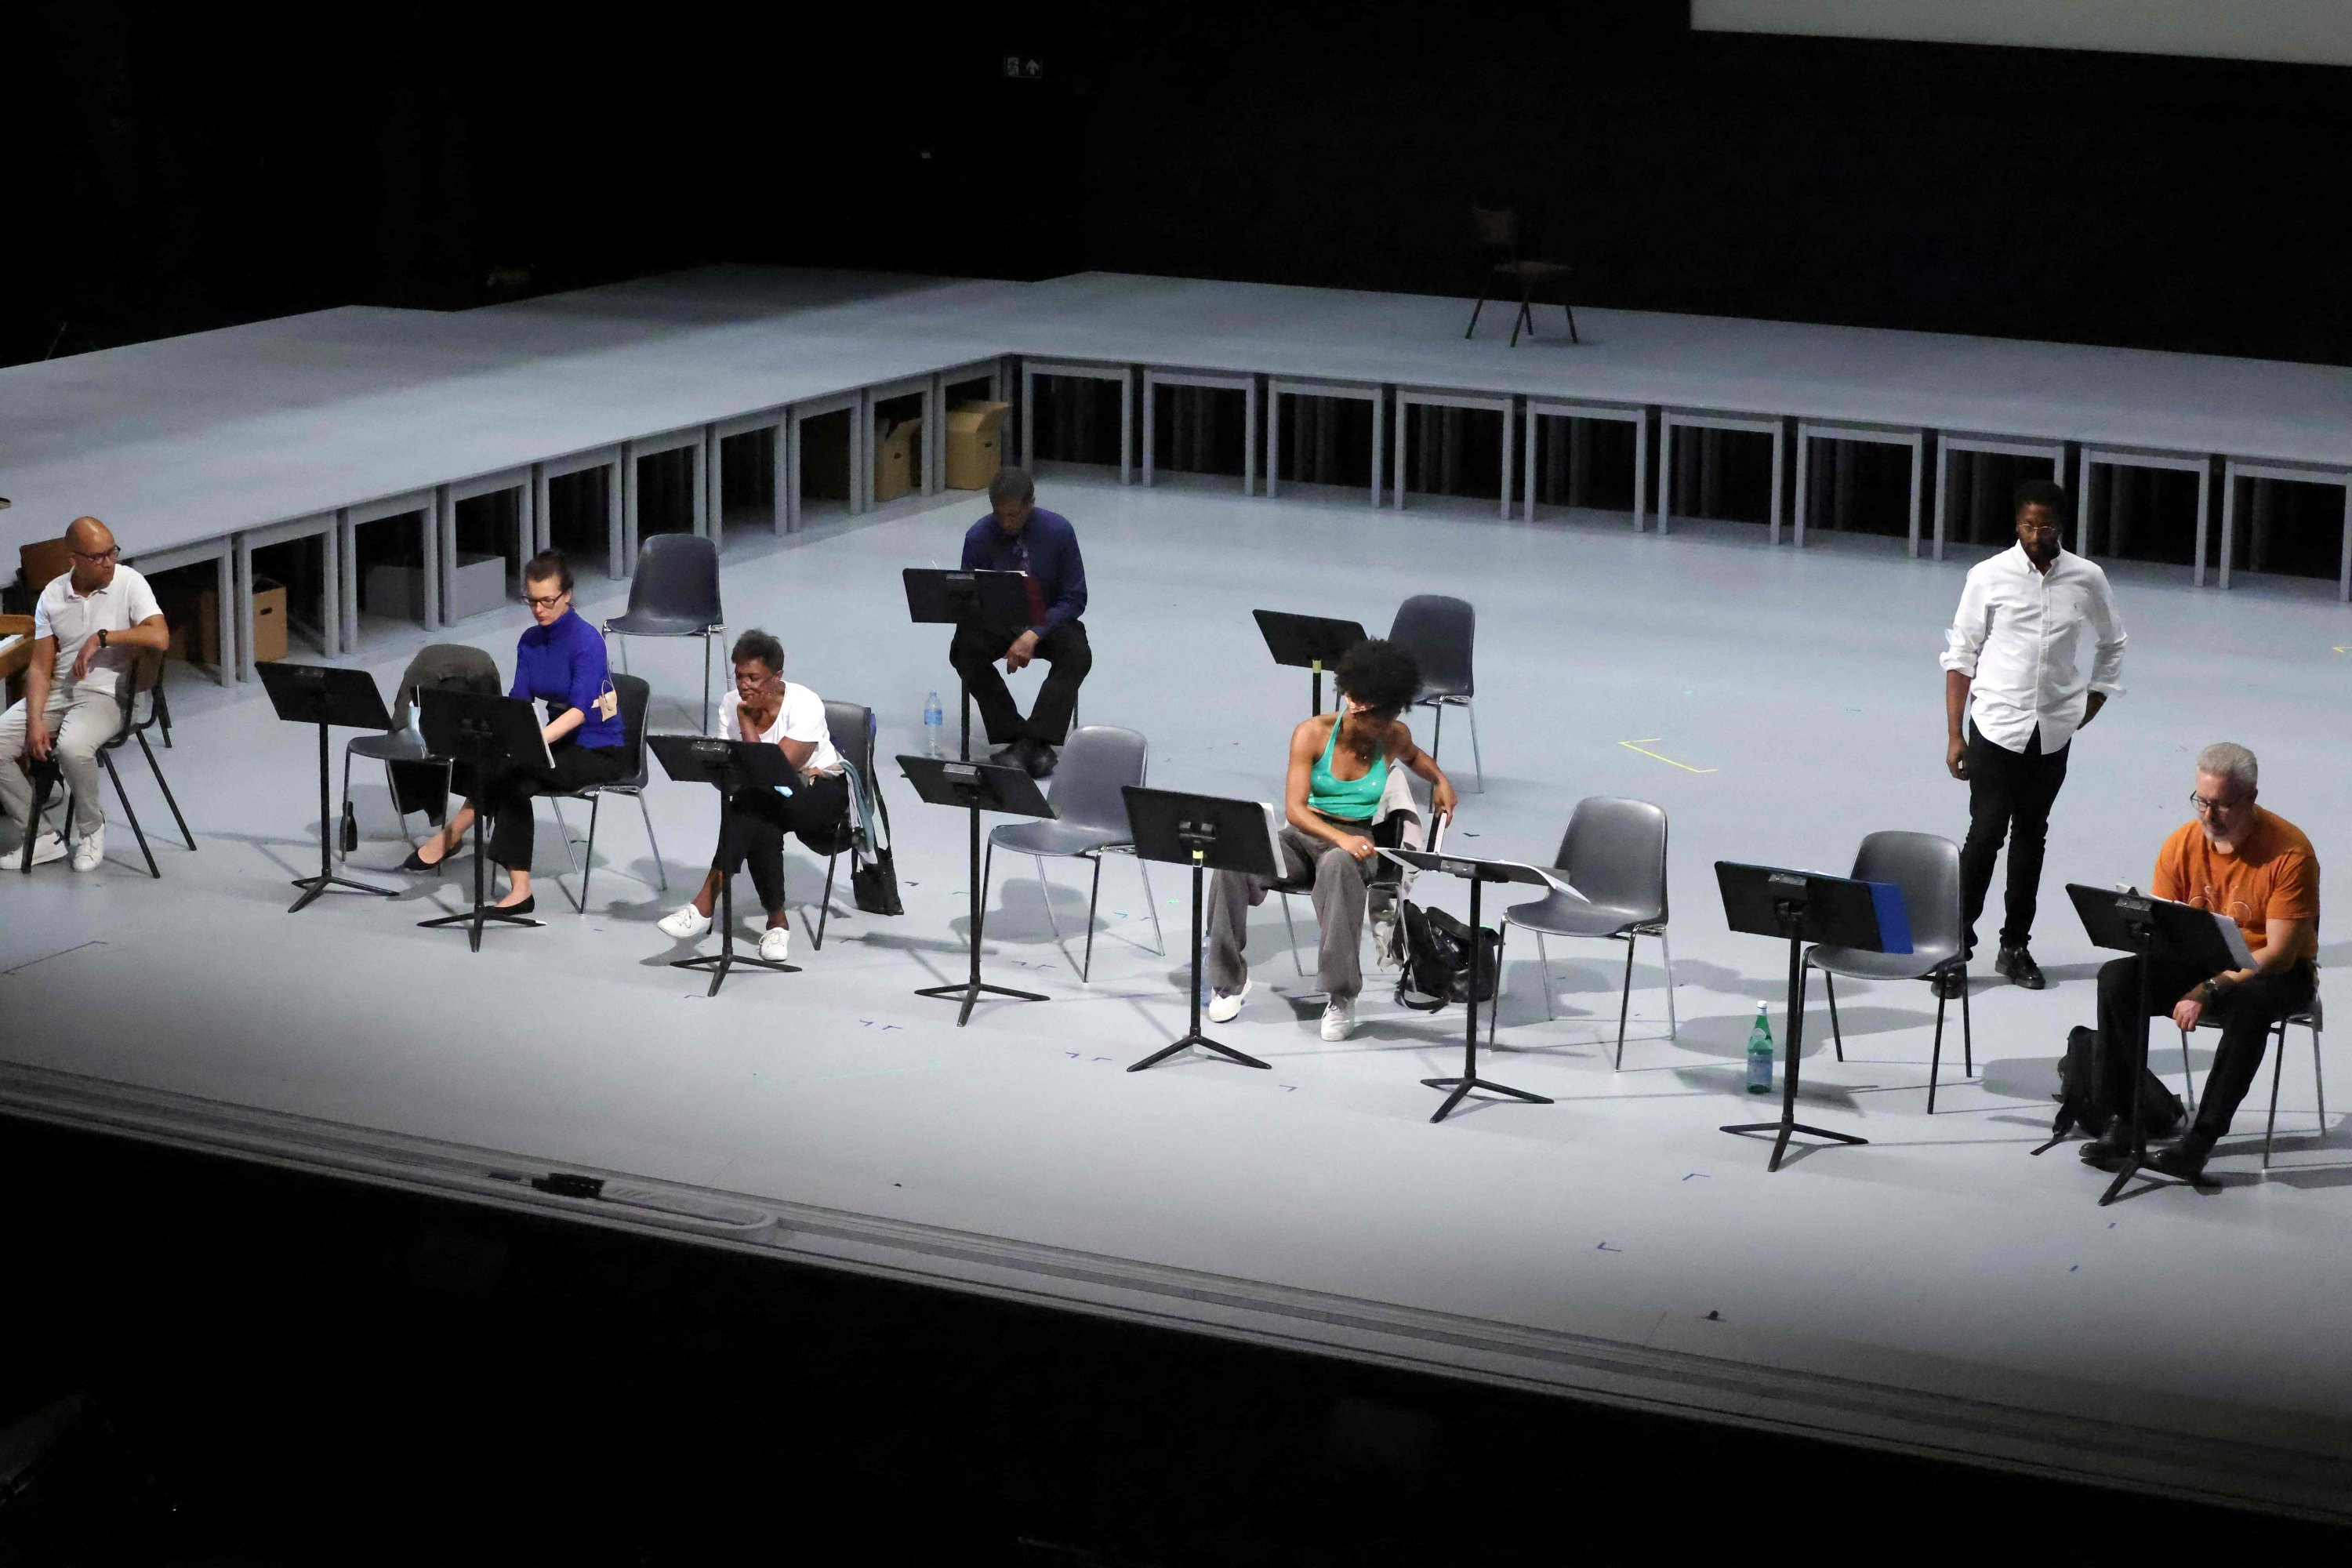 Musicians attend a rehearsal of 'The Time of Our Singing' opera at the Theatre Royal de la Monnaie in Brussels, Belgium, Sept. 3, 2021. (AFP Photo)